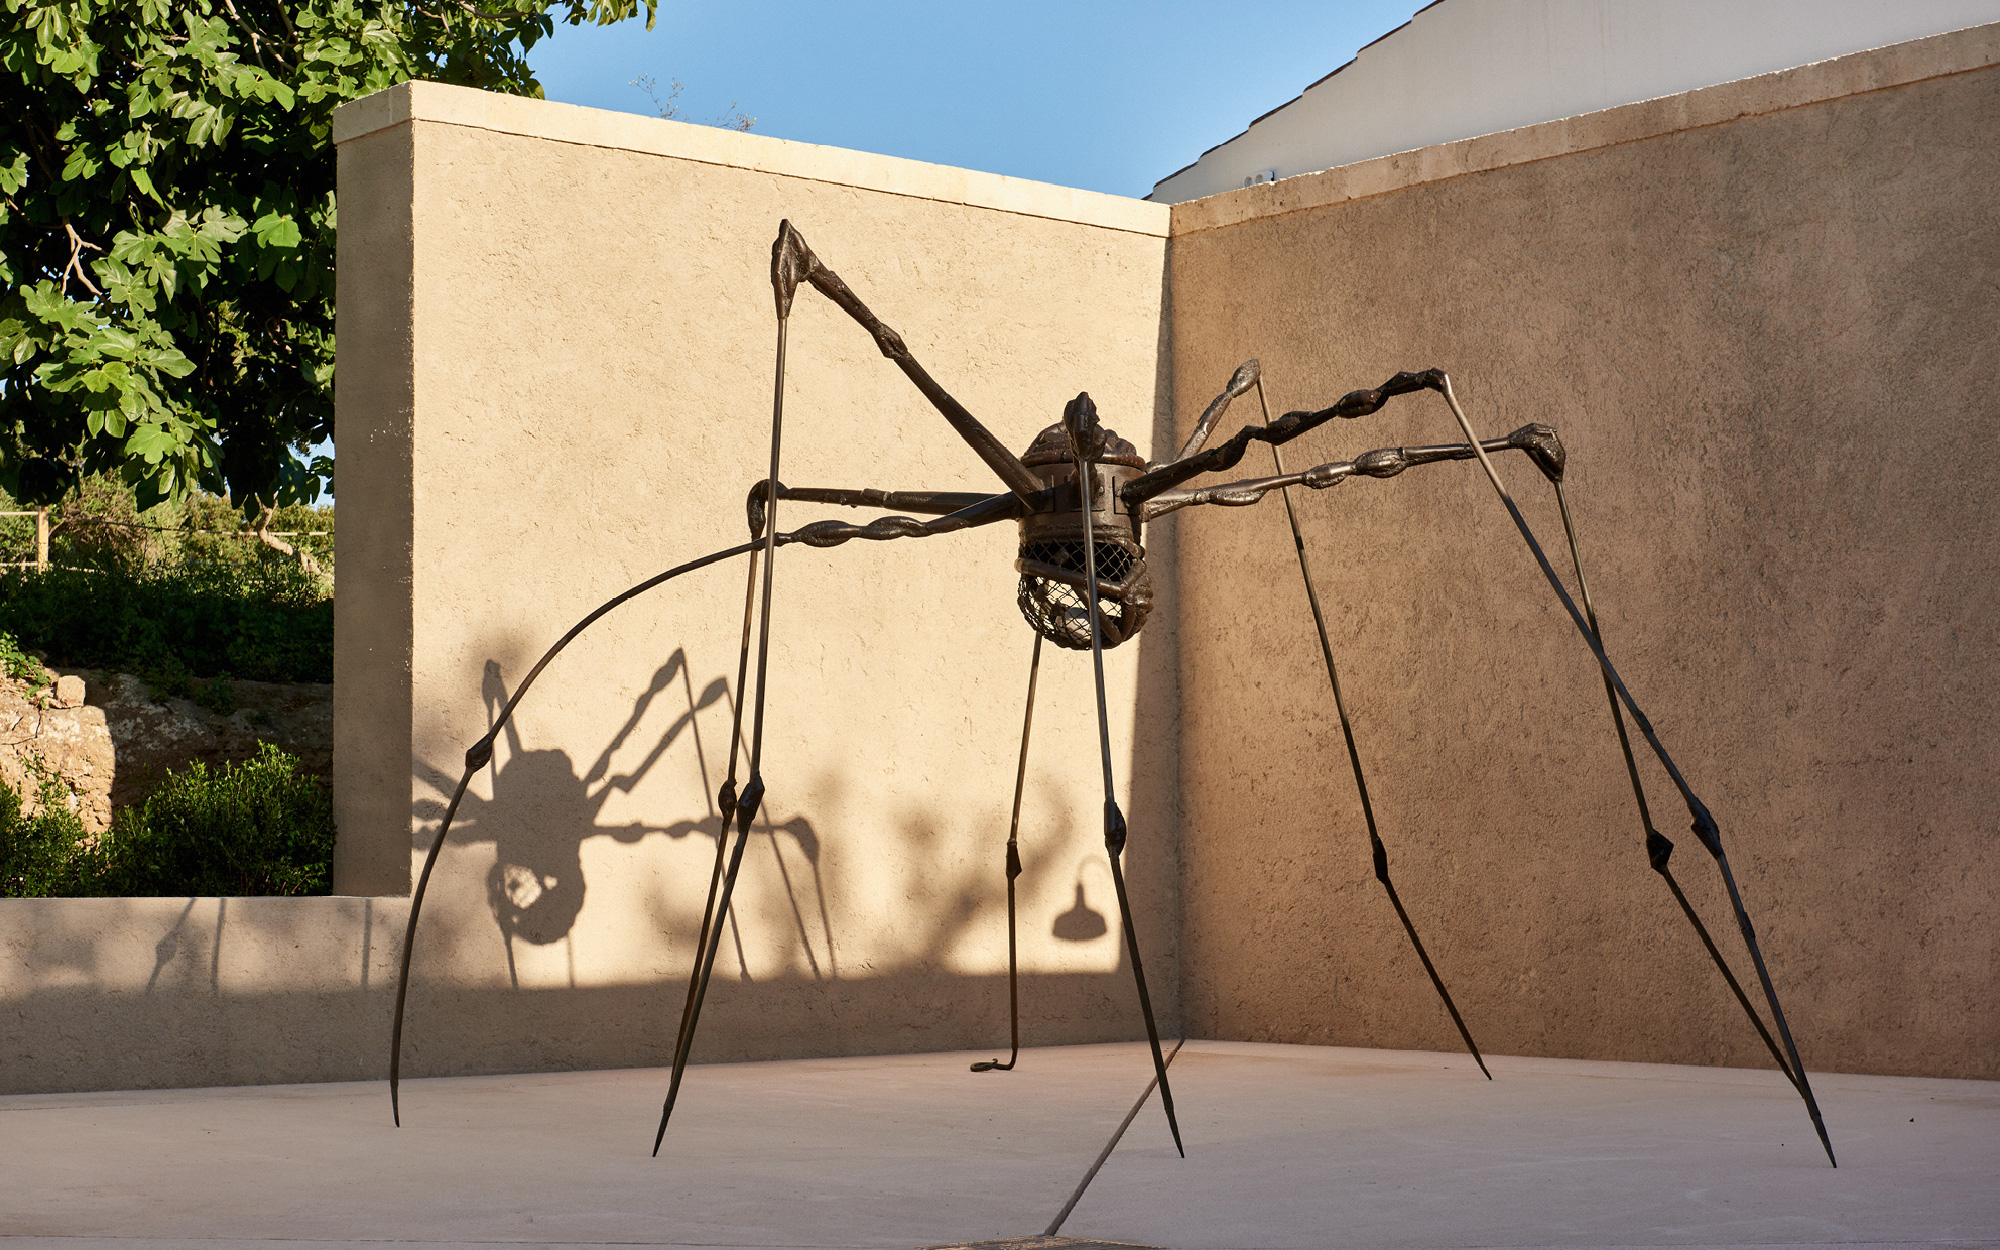 'Spider' (1994) by Louise Bourgeois on Hauser & Wirth Menorca © The Easton Foundation / DACS Courtesy The Easton Foundation and Hauser & Wirth © Daniel Schäfer